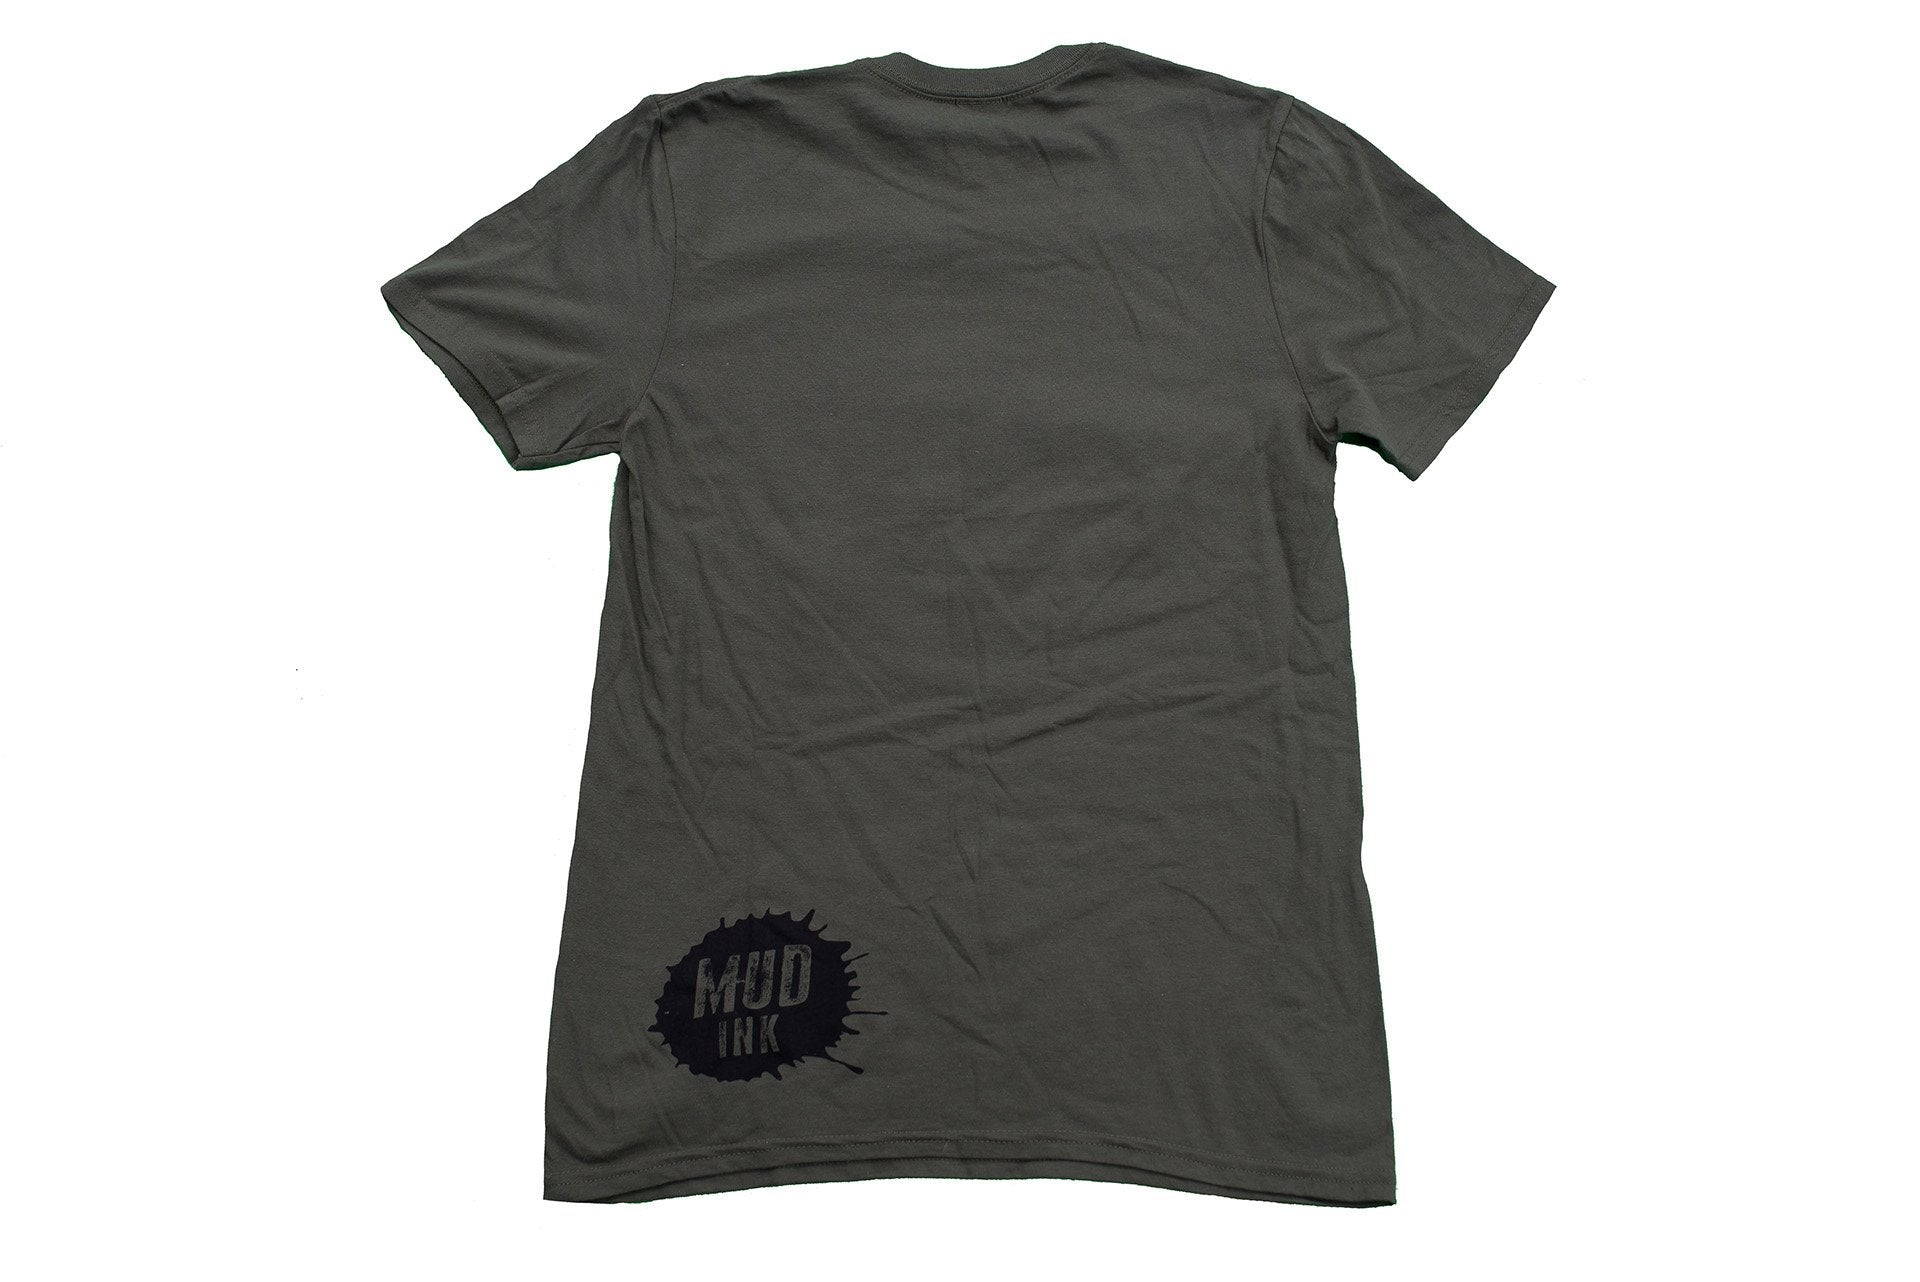 Military Green Grill Design Short Sleeve